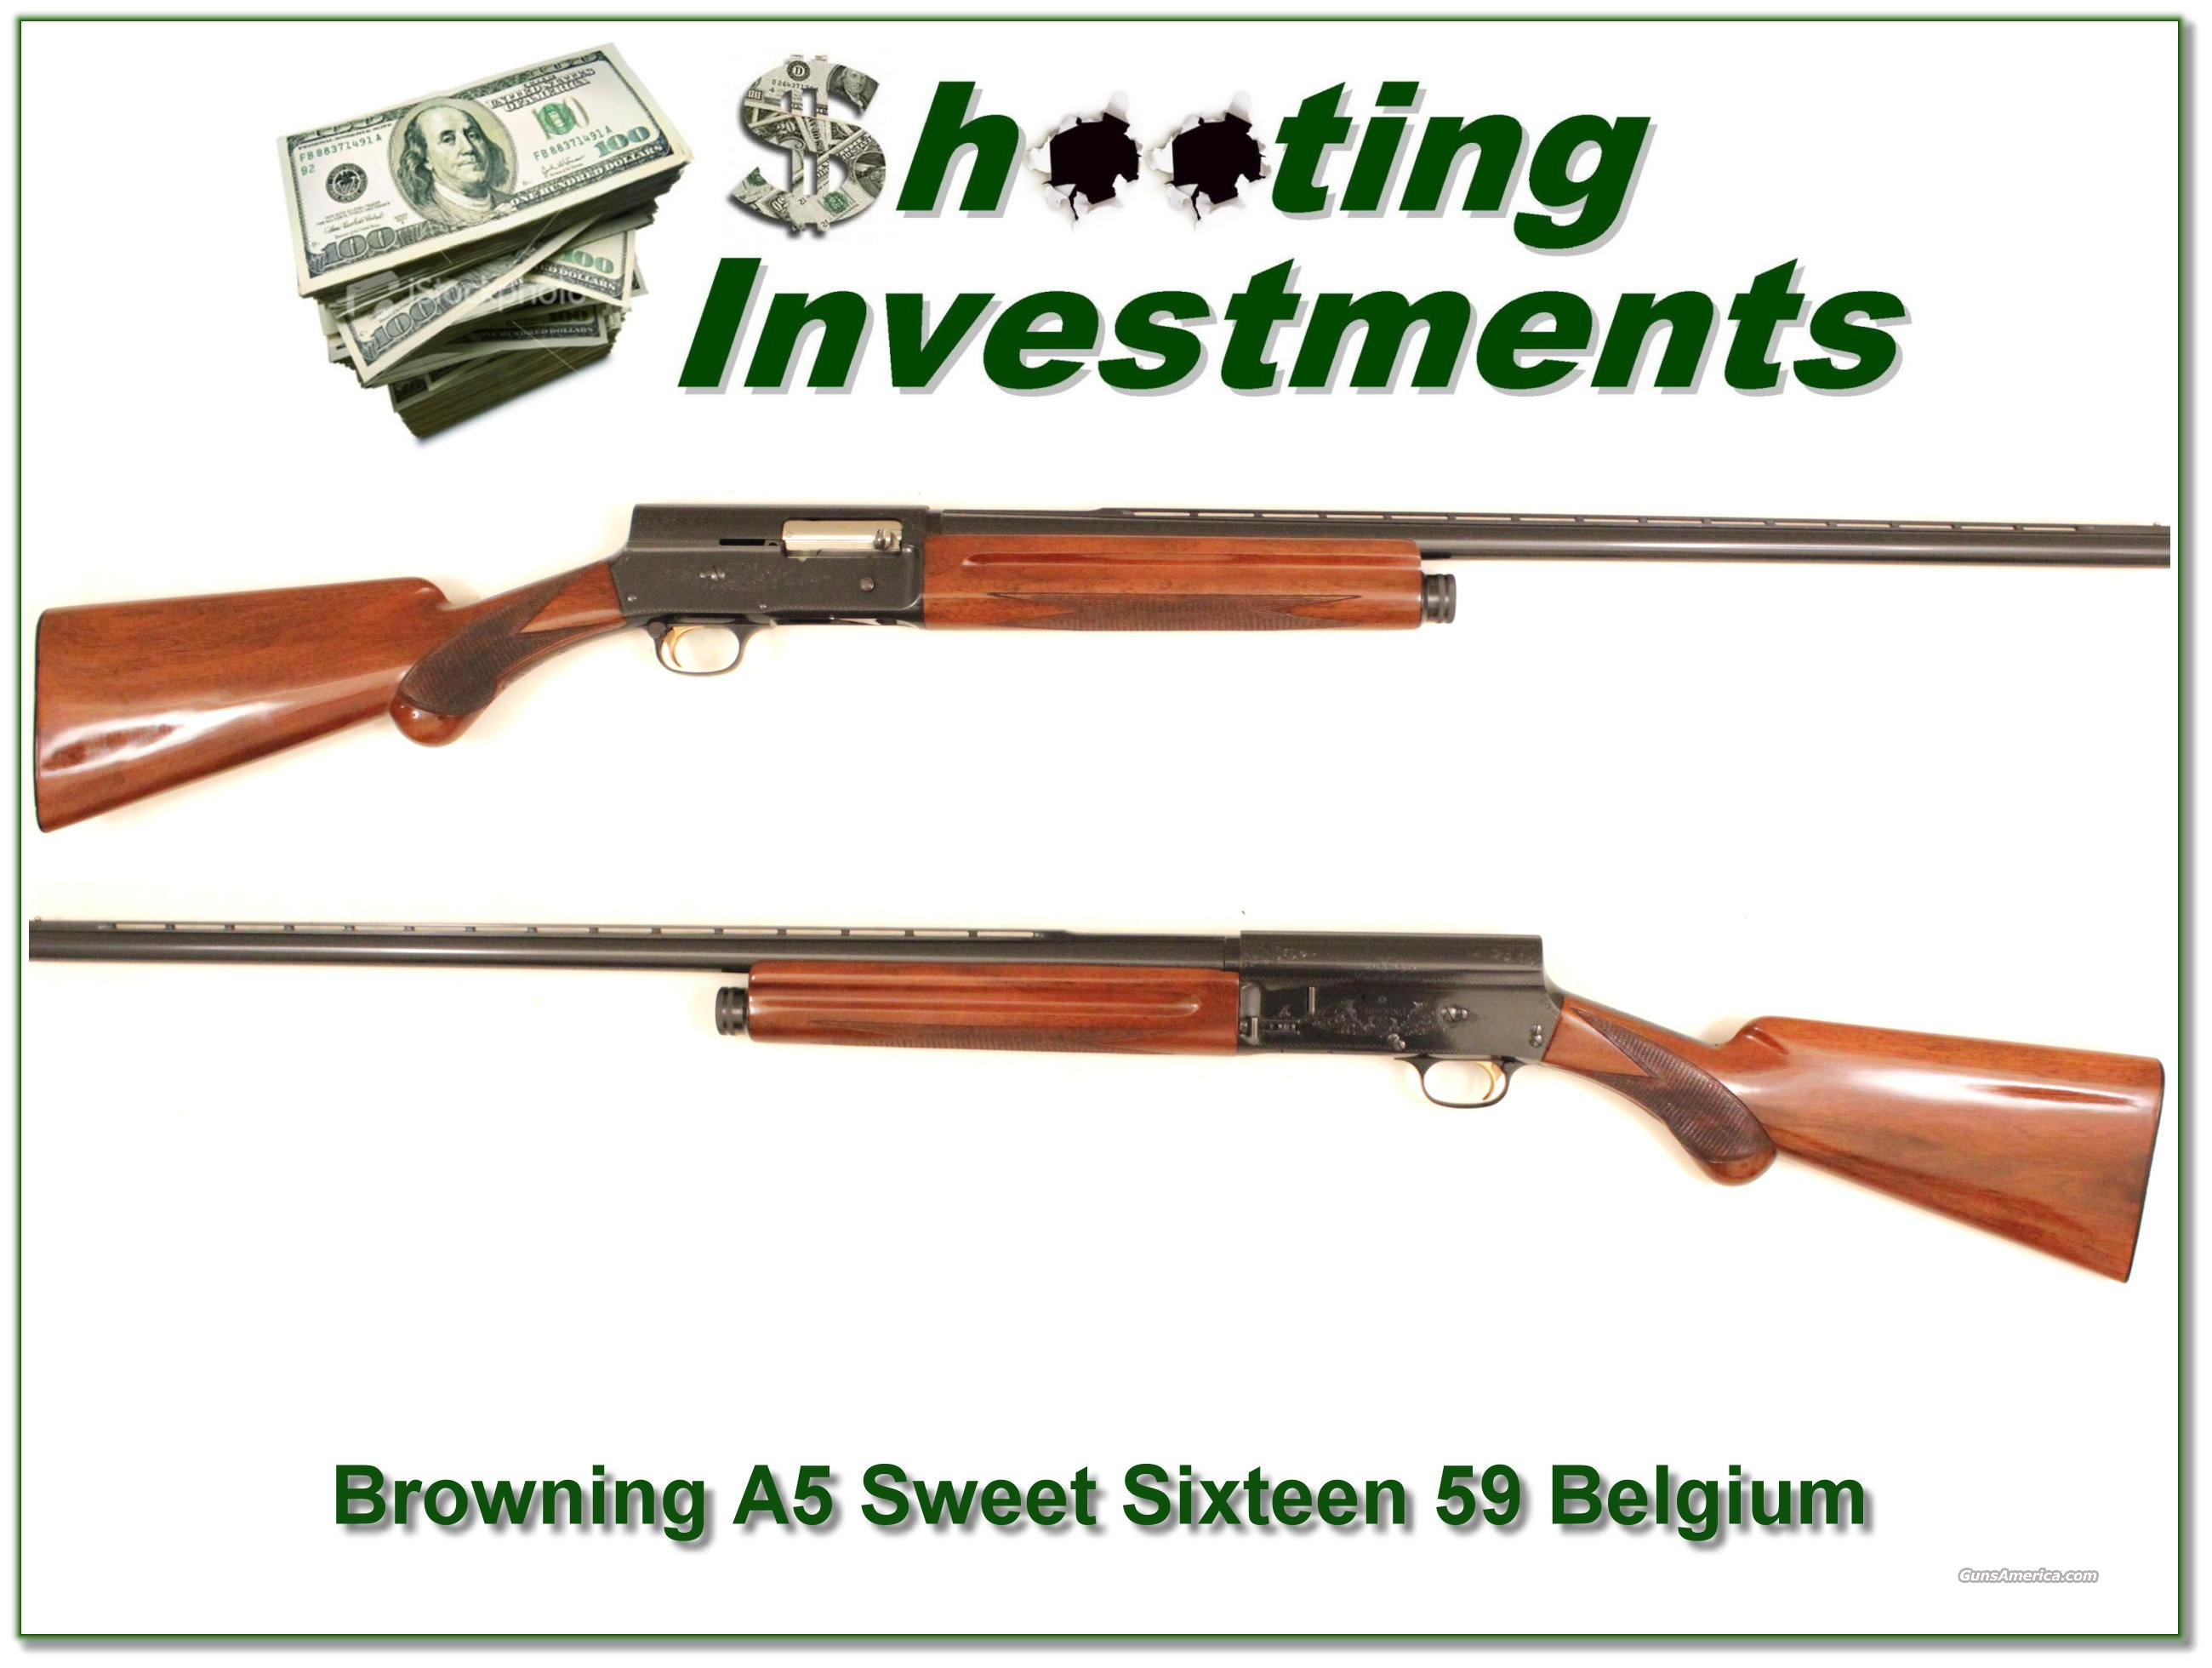 Browning A5 Sweet Sixteen 59 Belgium as new  Guns > Shotguns > Browning Shotguns > Autoloaders > Hunting